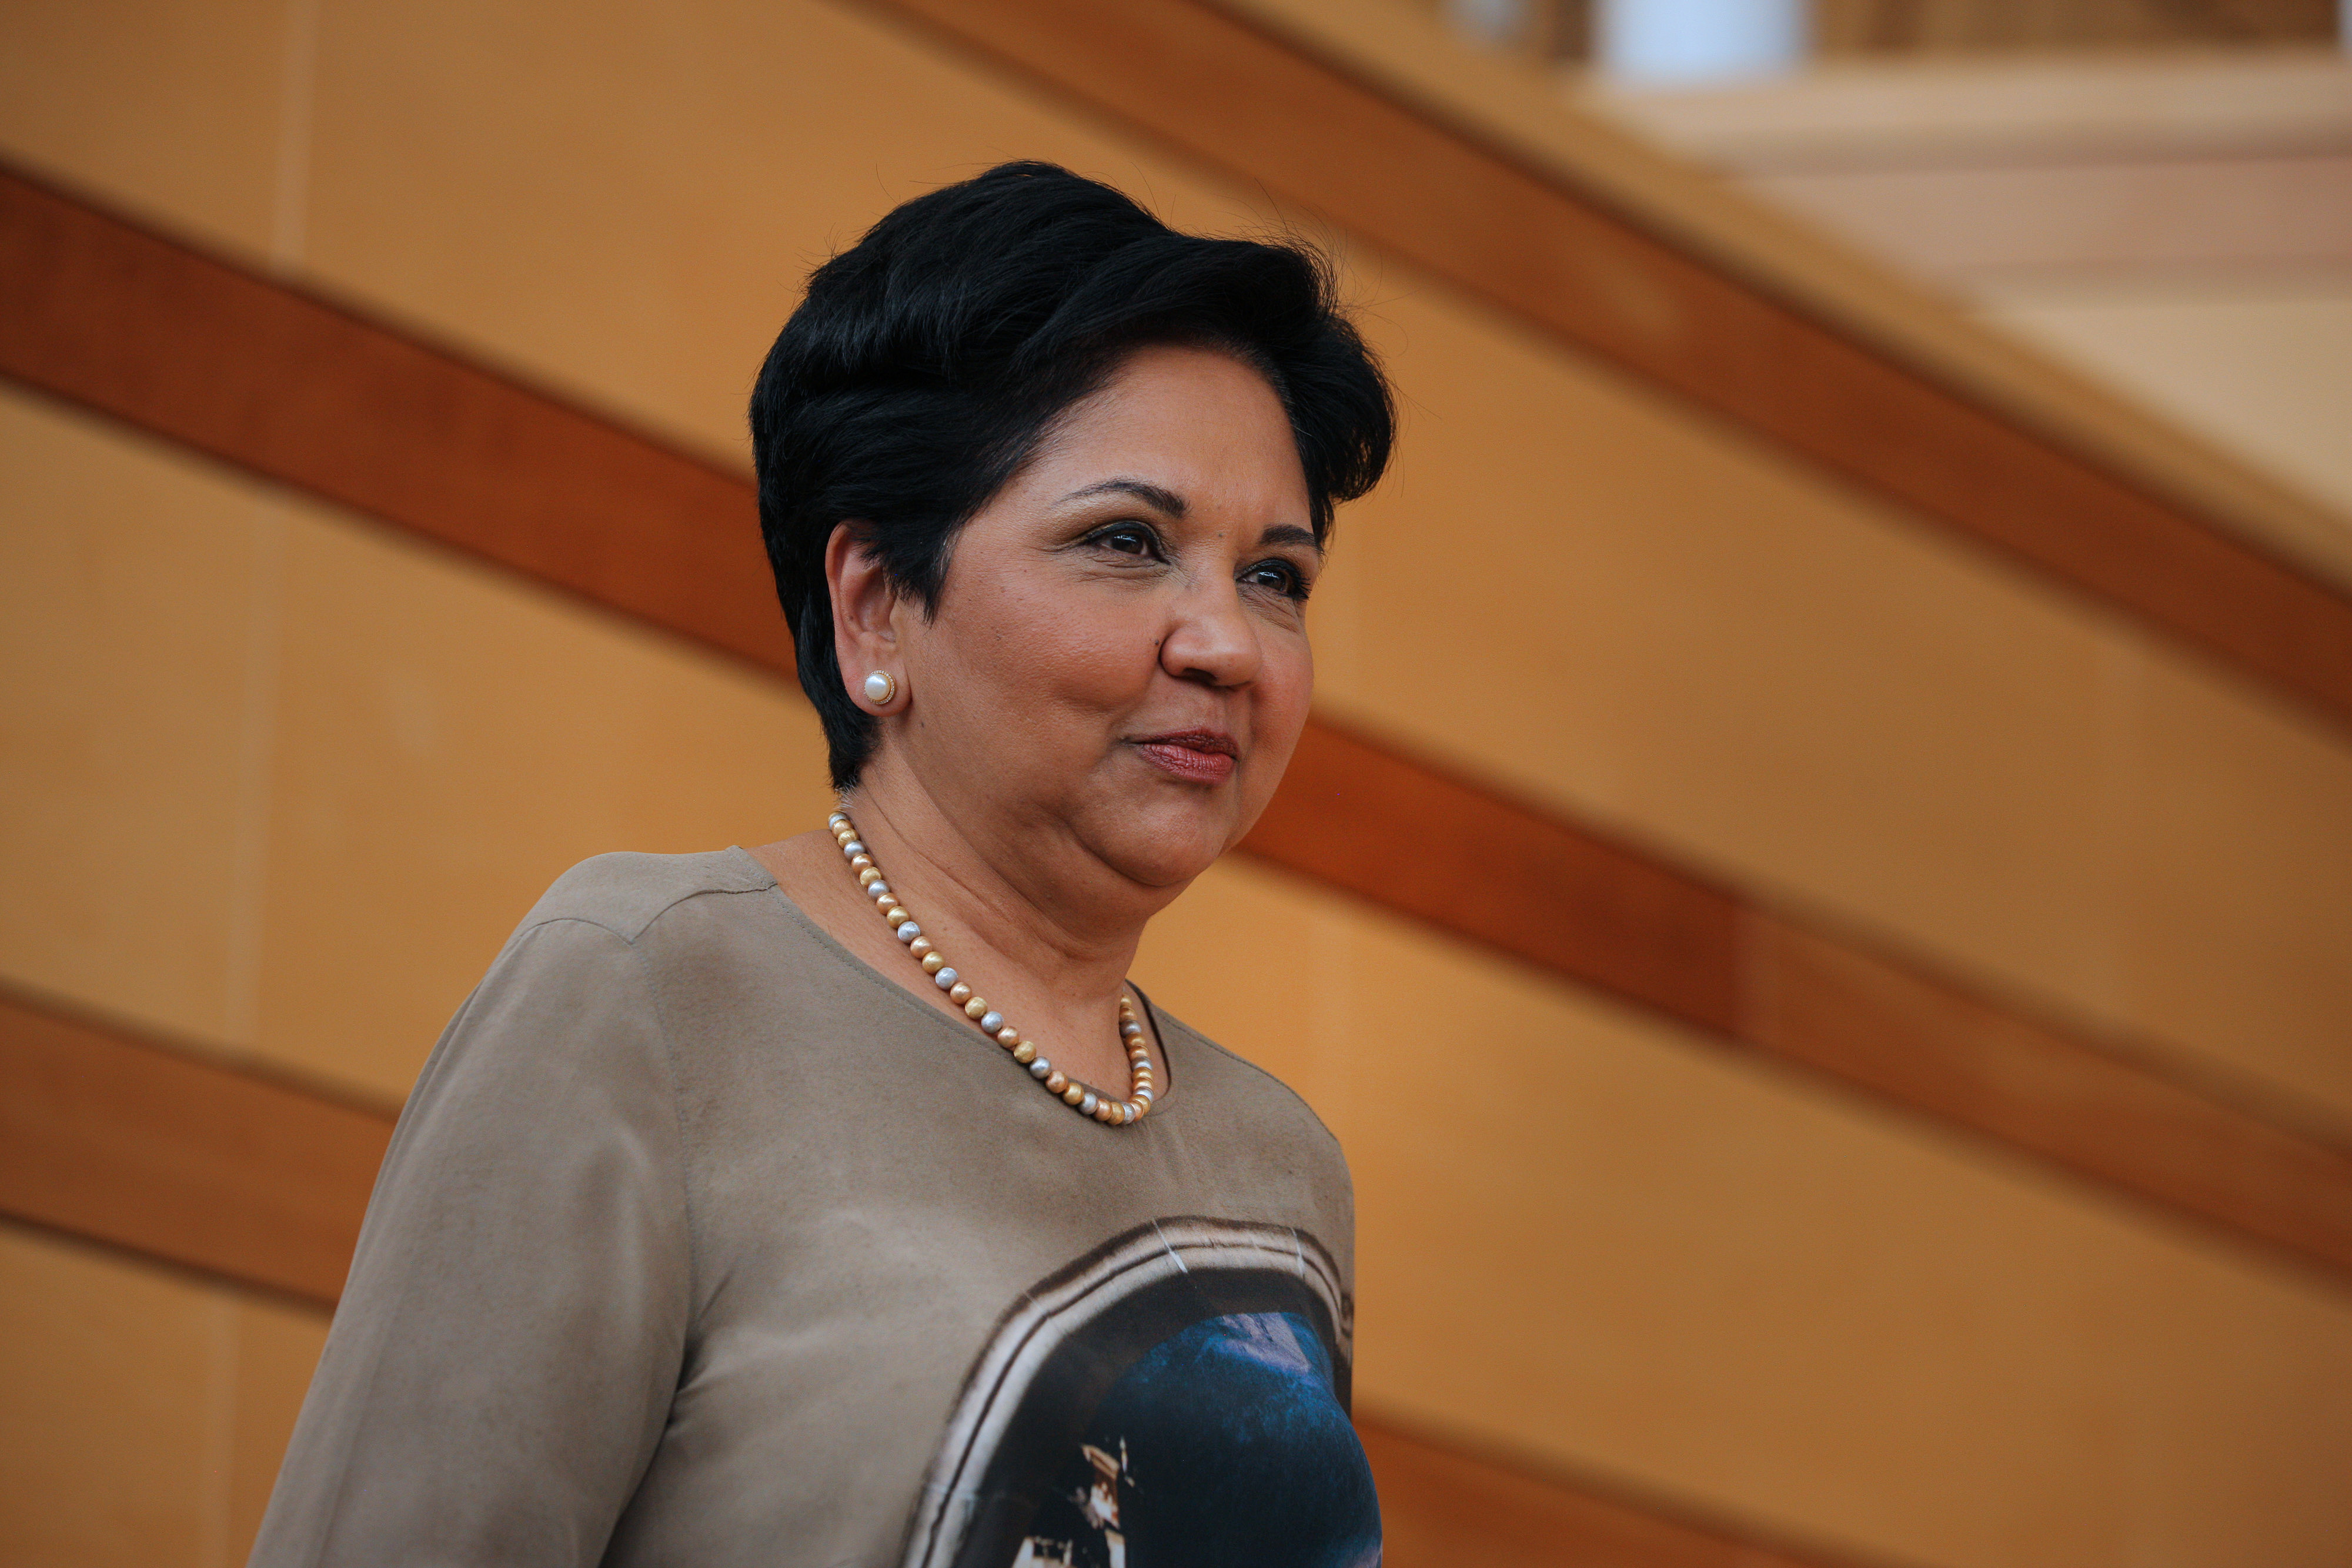 Indra Nooyi, chairman and chief executive officer of PepsiCo., arrives to speak during the Aspen Ideas Festival in Aspen, Colorado, U.S., on Monday, June 30, 2014.